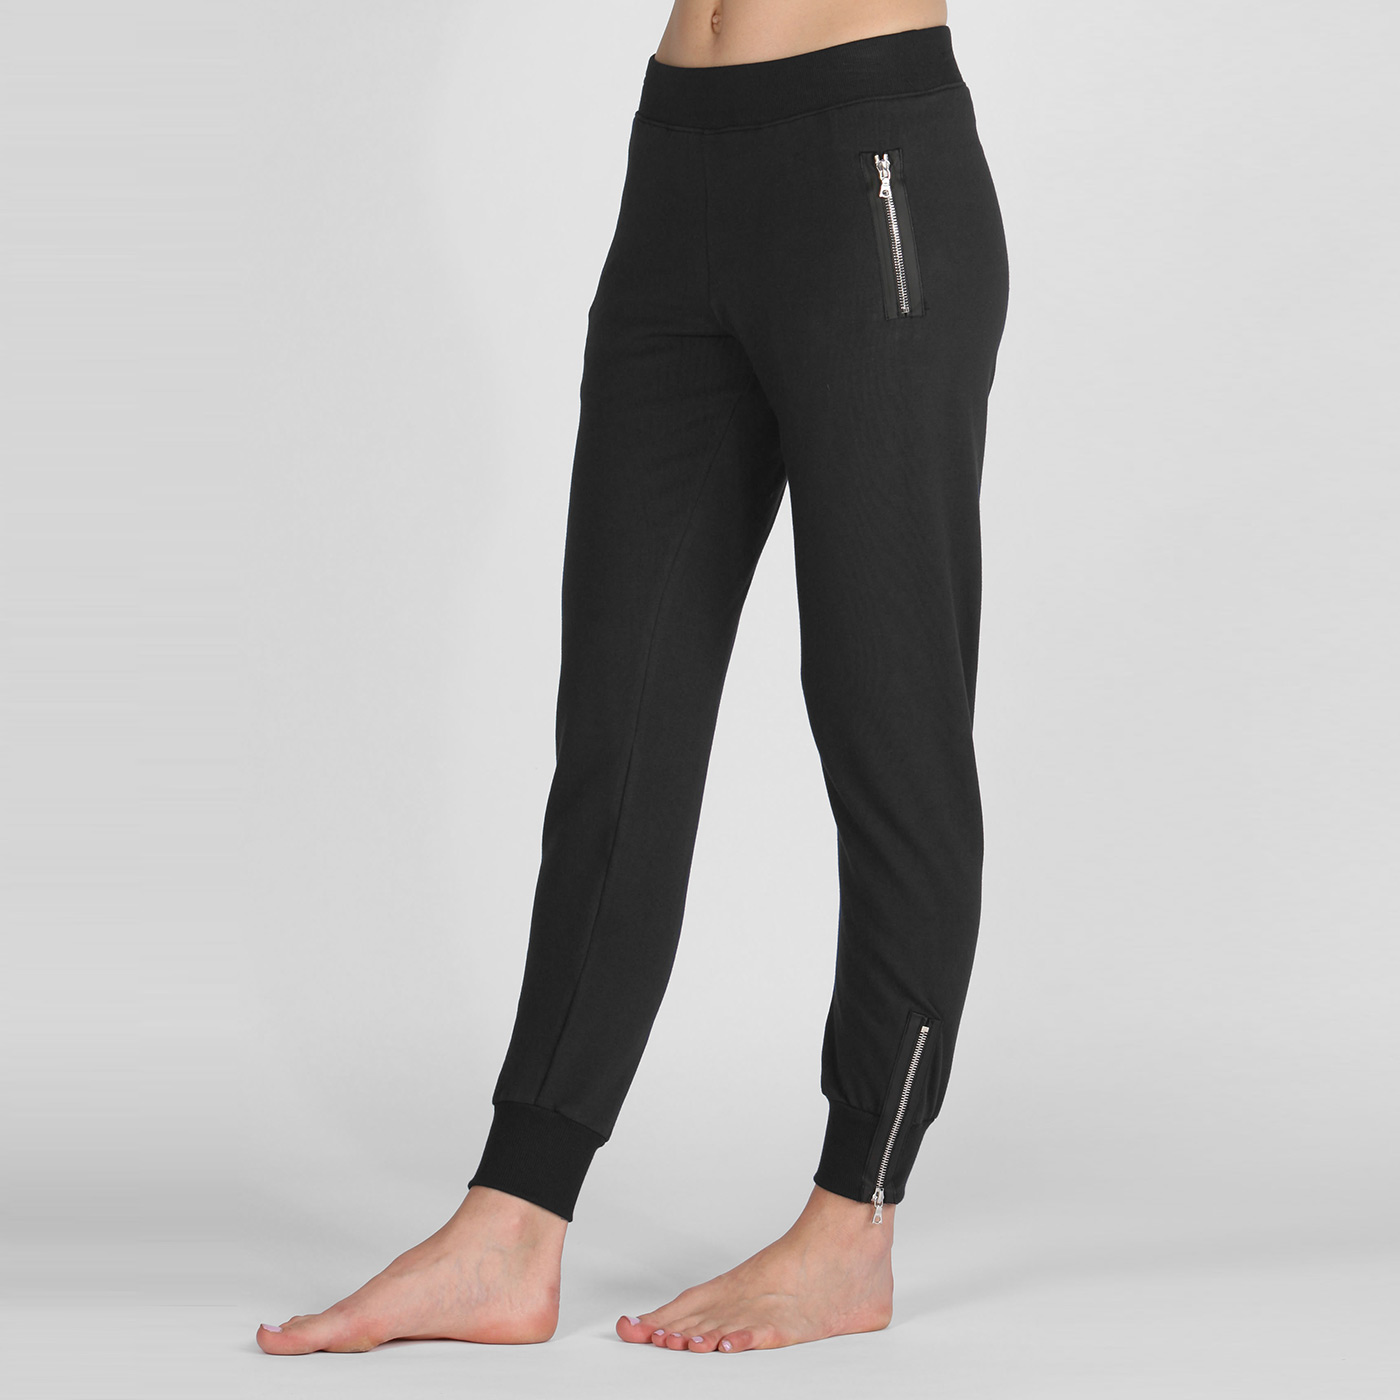 159ad90cba3b3 Solow Zippered Jogger Womens Apparel at Vickerey